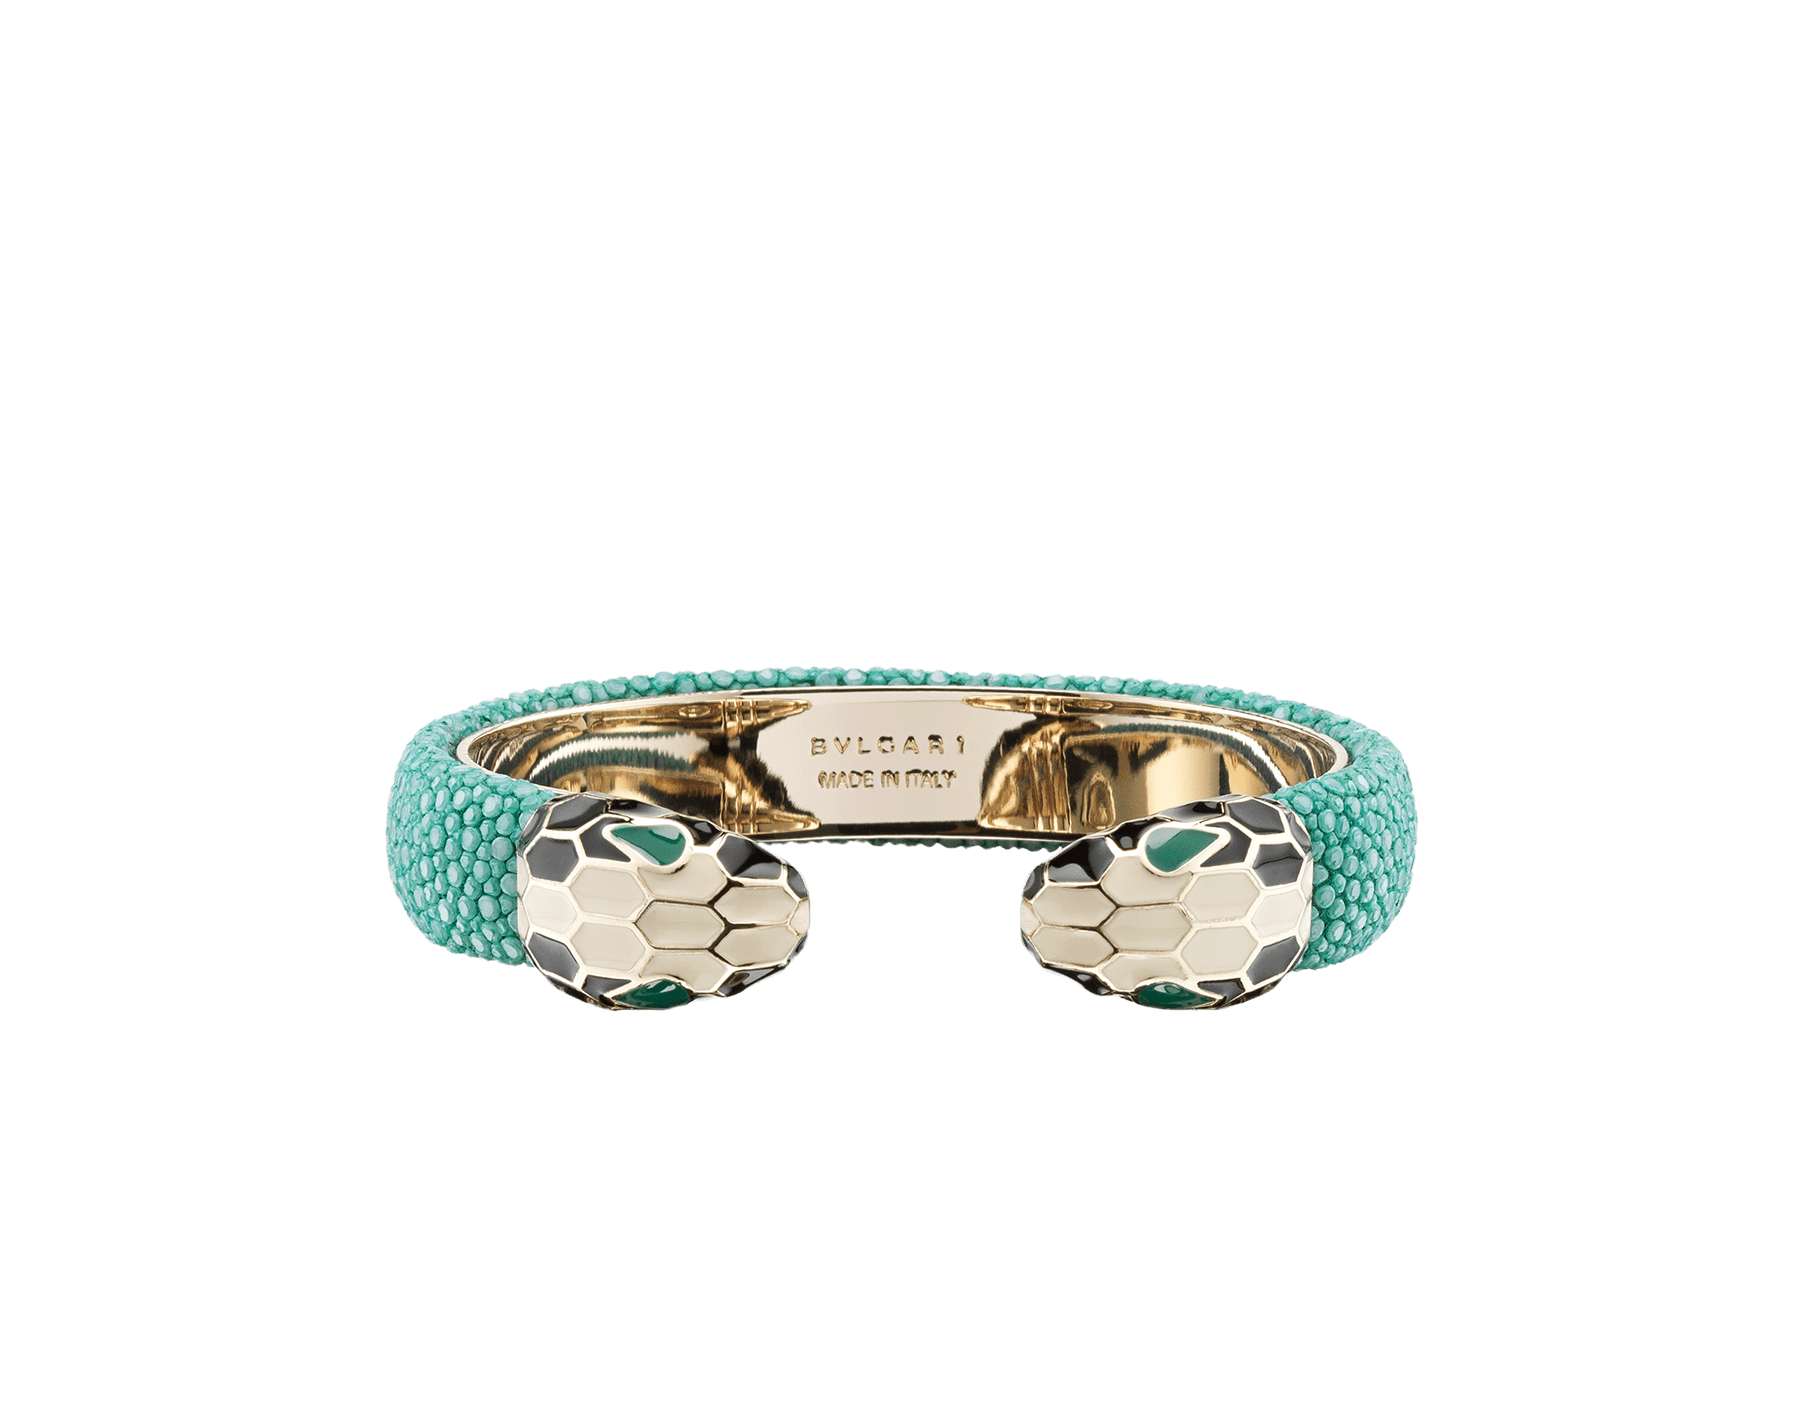 Green galuchat skin bracelet with contraire brass light gold plated iconic black and white enamel Serpenti head motif with malachite enamel eyes. Small. Also available in other colors in store. 2 (5.3 cm) SPContr-G-EG image 1